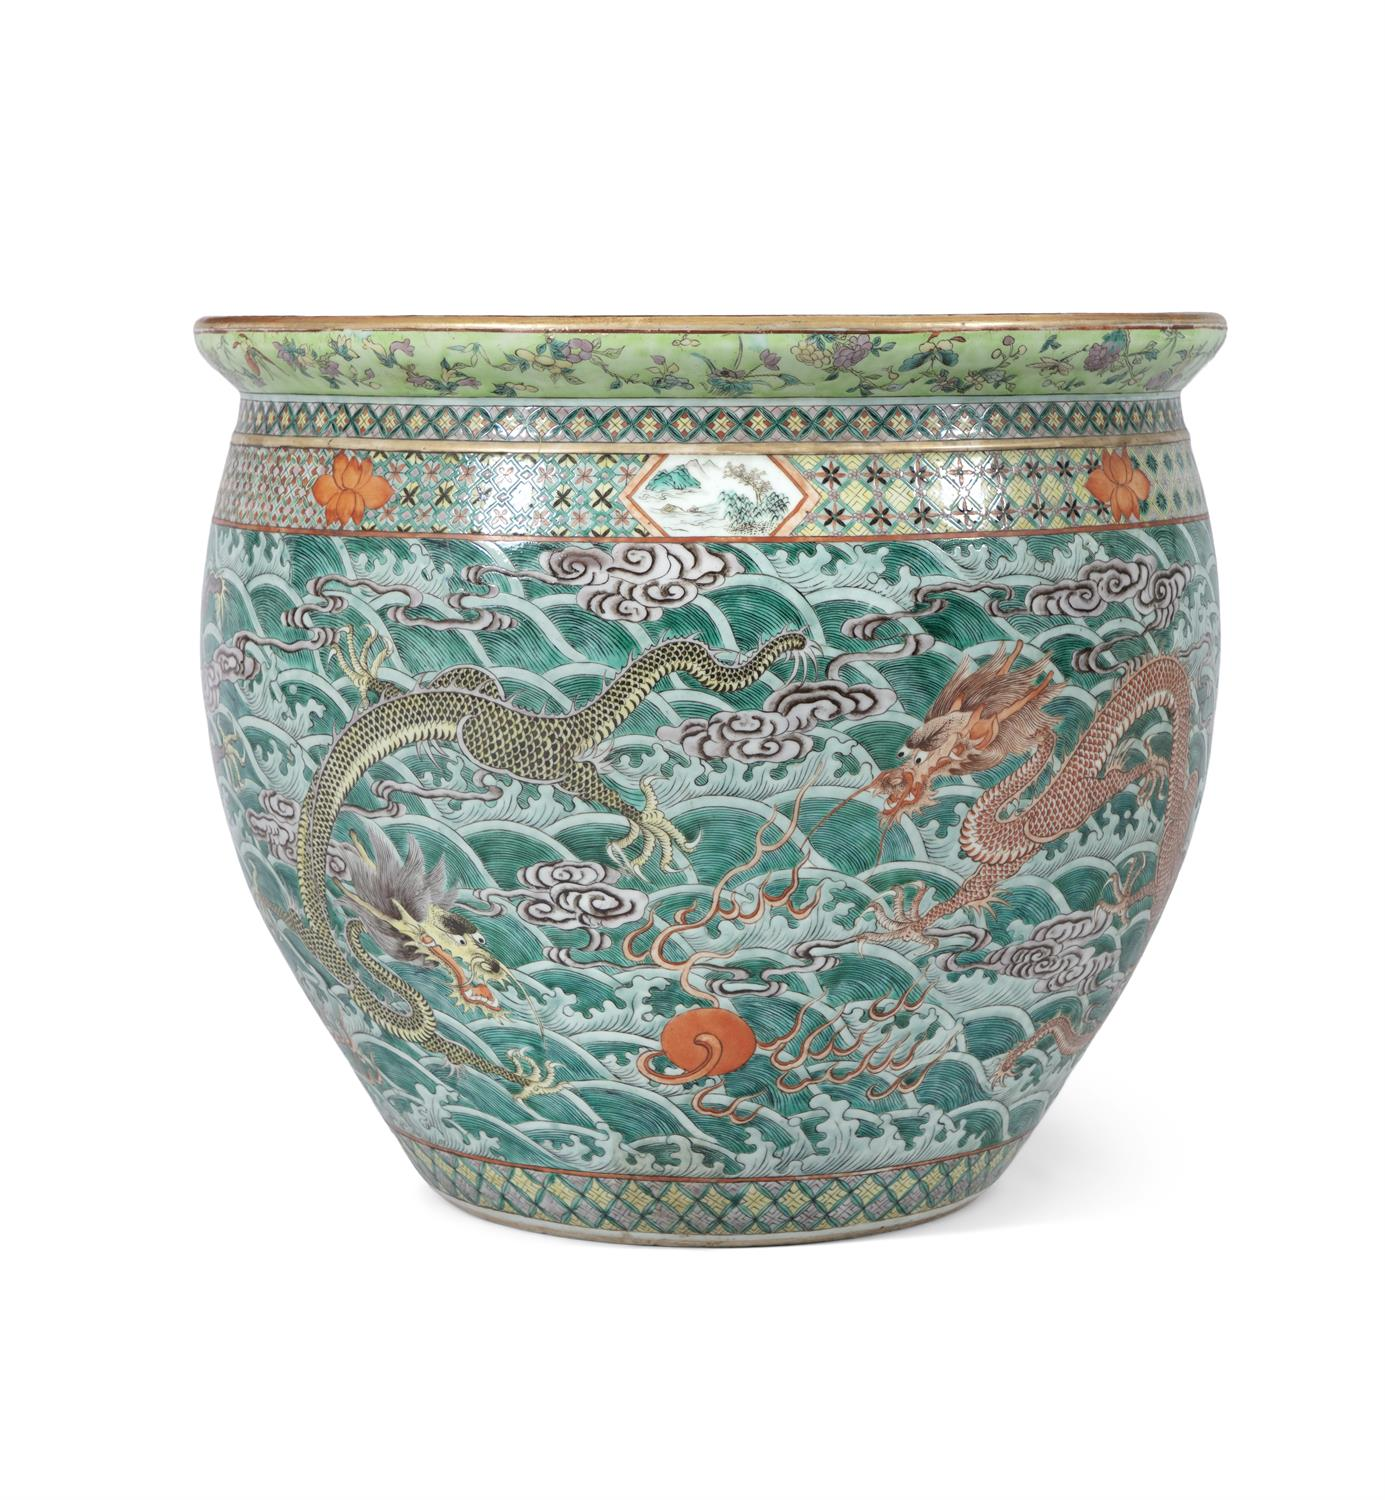 A LARGE 'FIVE-CLAWED DRAGONS' FAMILLE VERTE AQUARIUM /FISHBOWL China, Qing Dynasty, 19th century The - Image 3 of 24